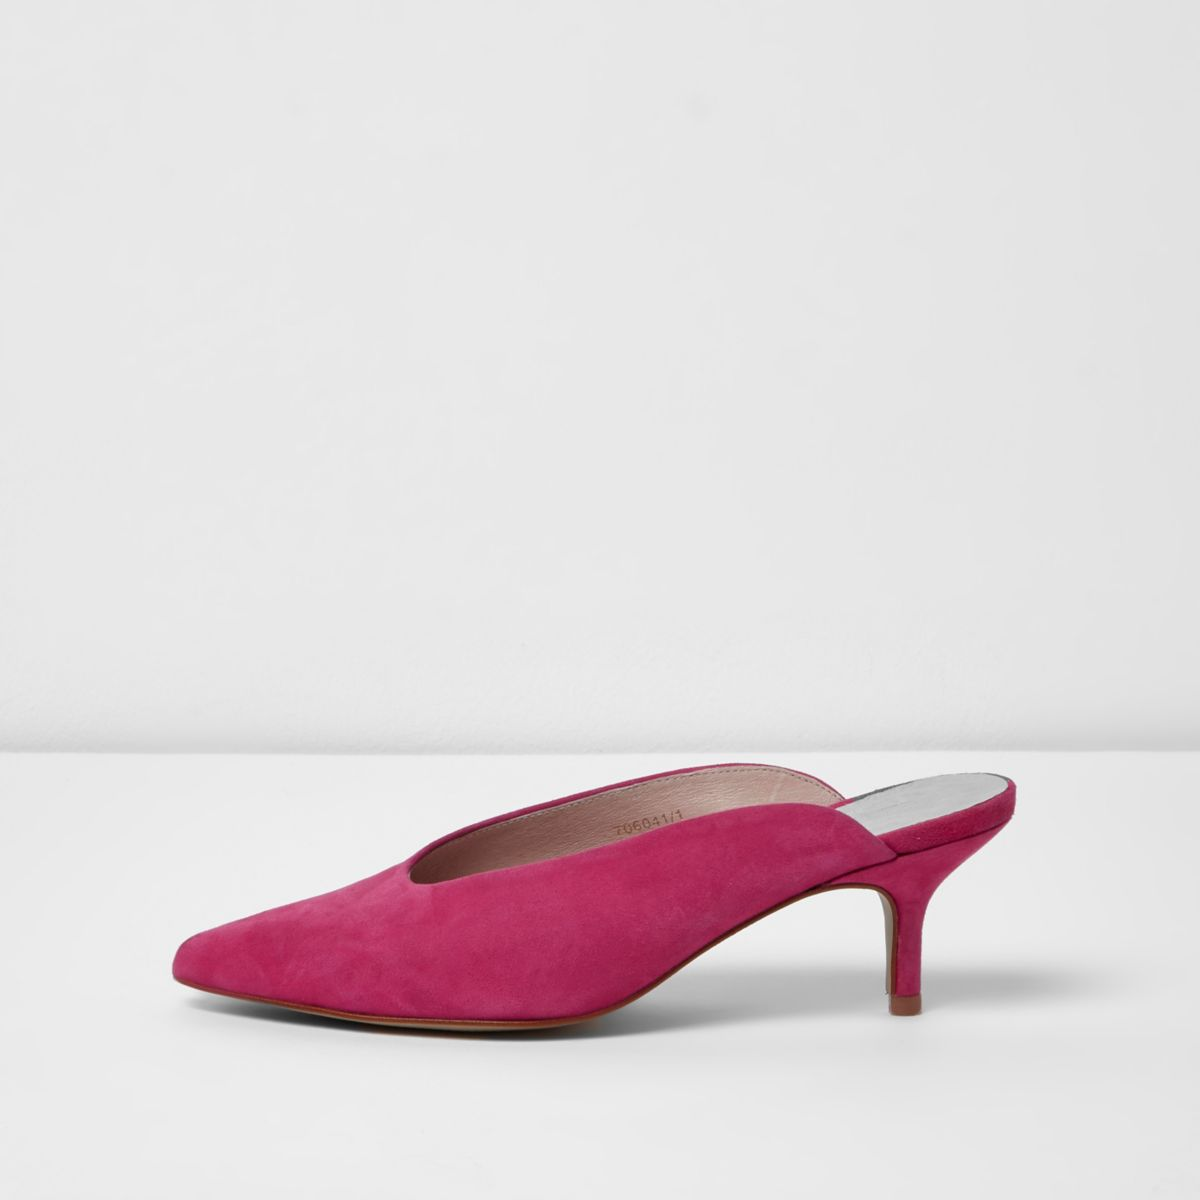 Pink pointed high vamp kitten heel mules